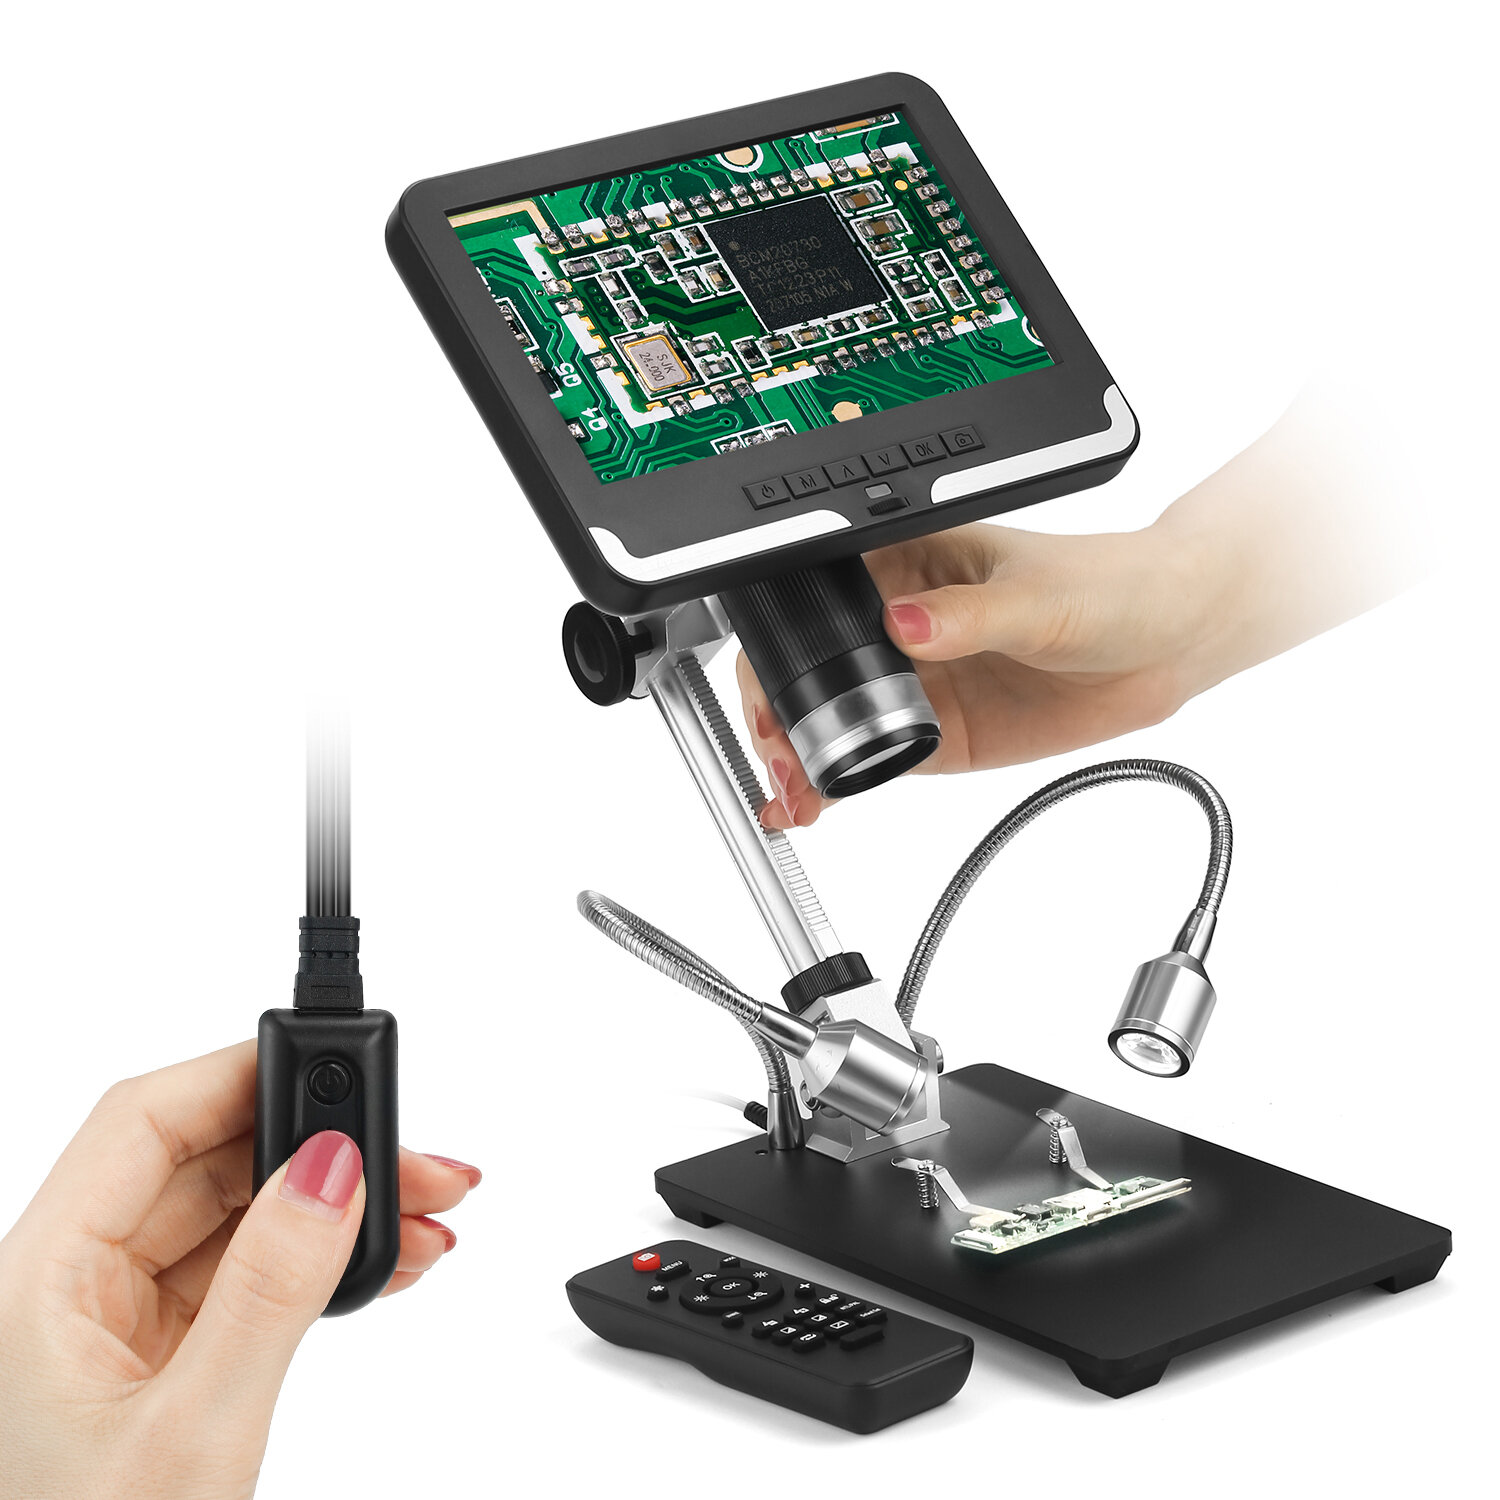 Andonstar AD206 1080P 3D Digital Microscope Soldering Microscope for Phone Repairing SMD / SMT